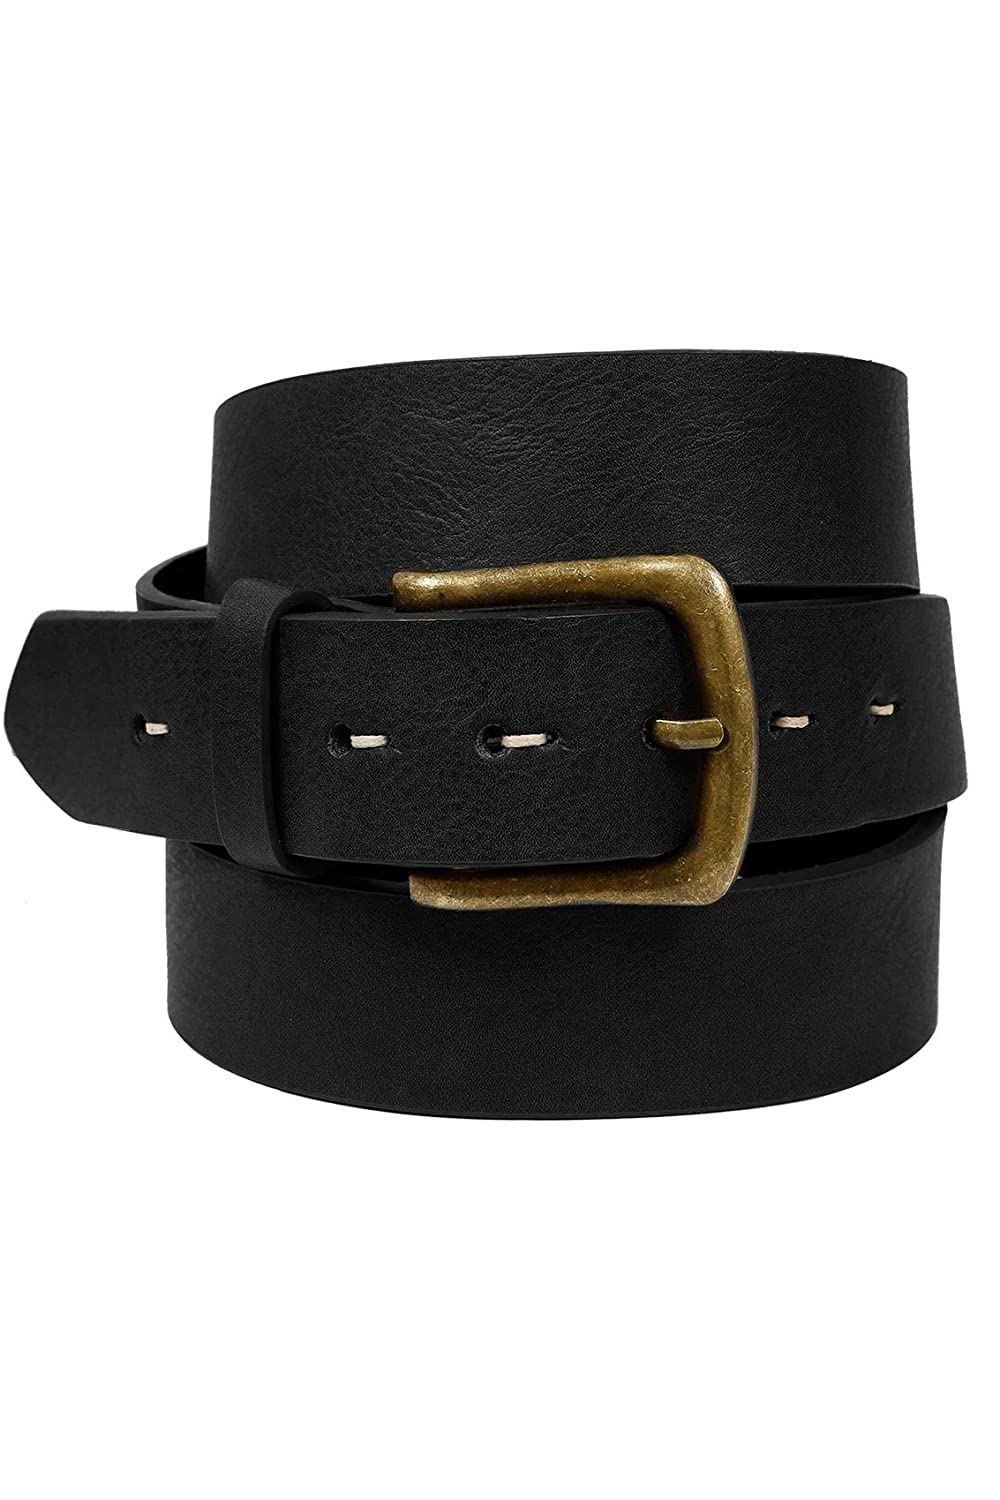 Yoursclothing Mens Badrhino Bonded Leather Jean Belt